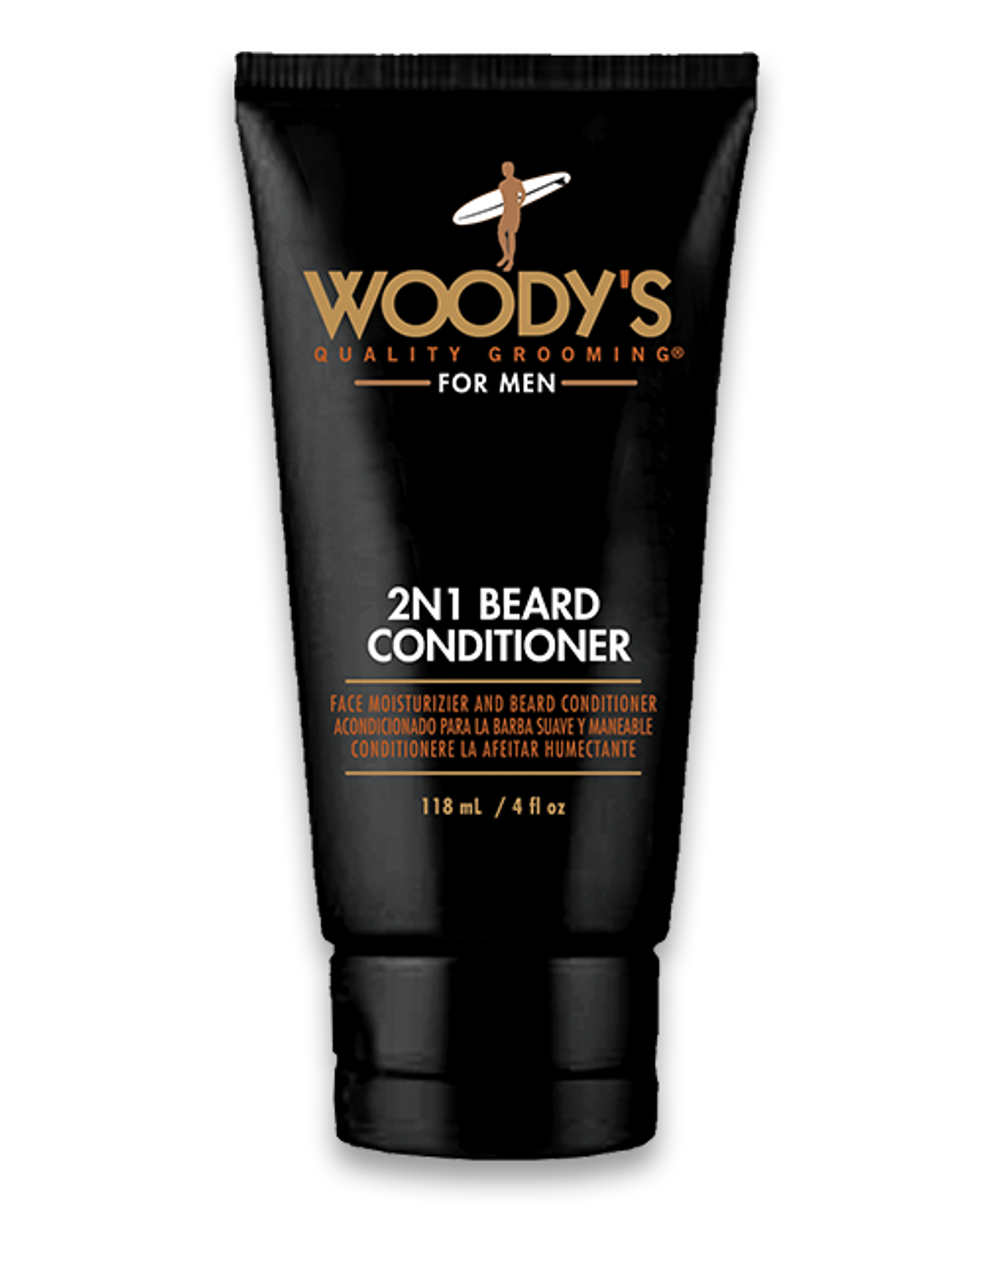 Woody's Beard Conditioner 2in1